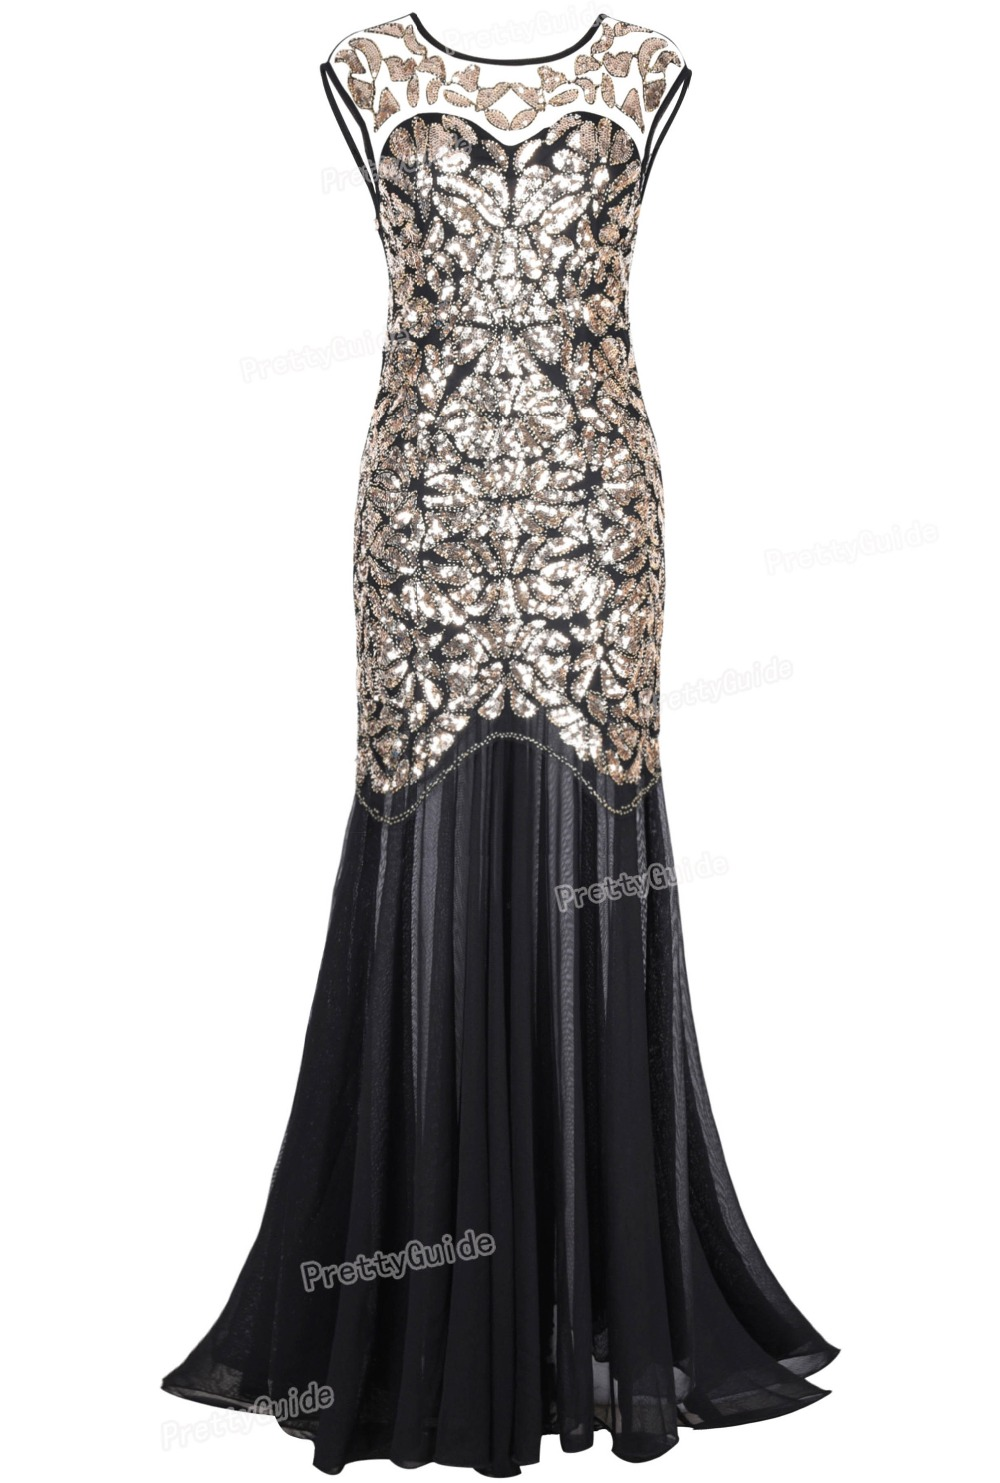 Lastest 192039s Style Dresses Flapper Dresses To Gatsby Dresses  1920s Style